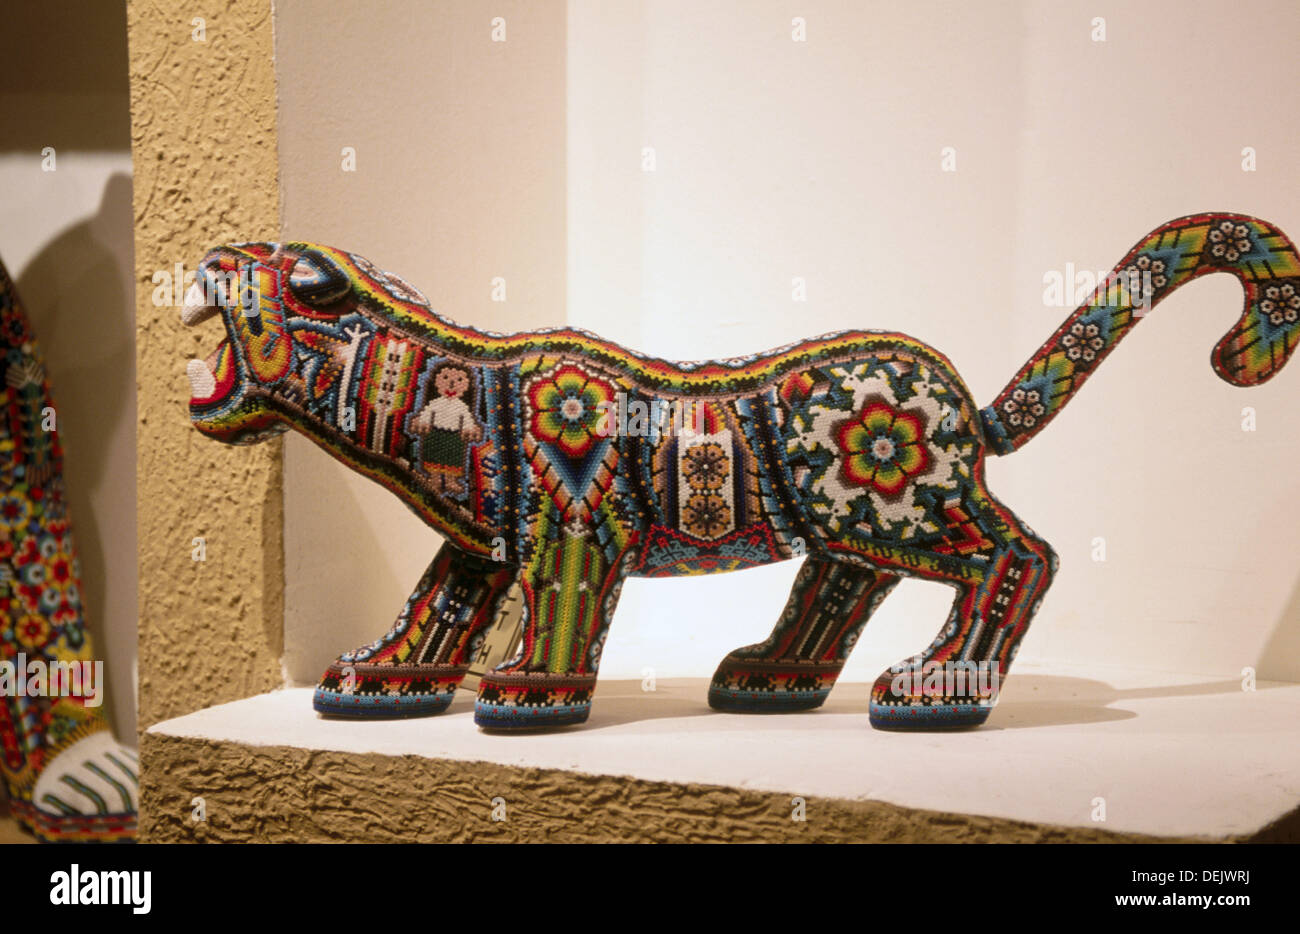 Arte Huichol For Sale Huichol Art Stock Photos Huichol Art Stock Images Alamy